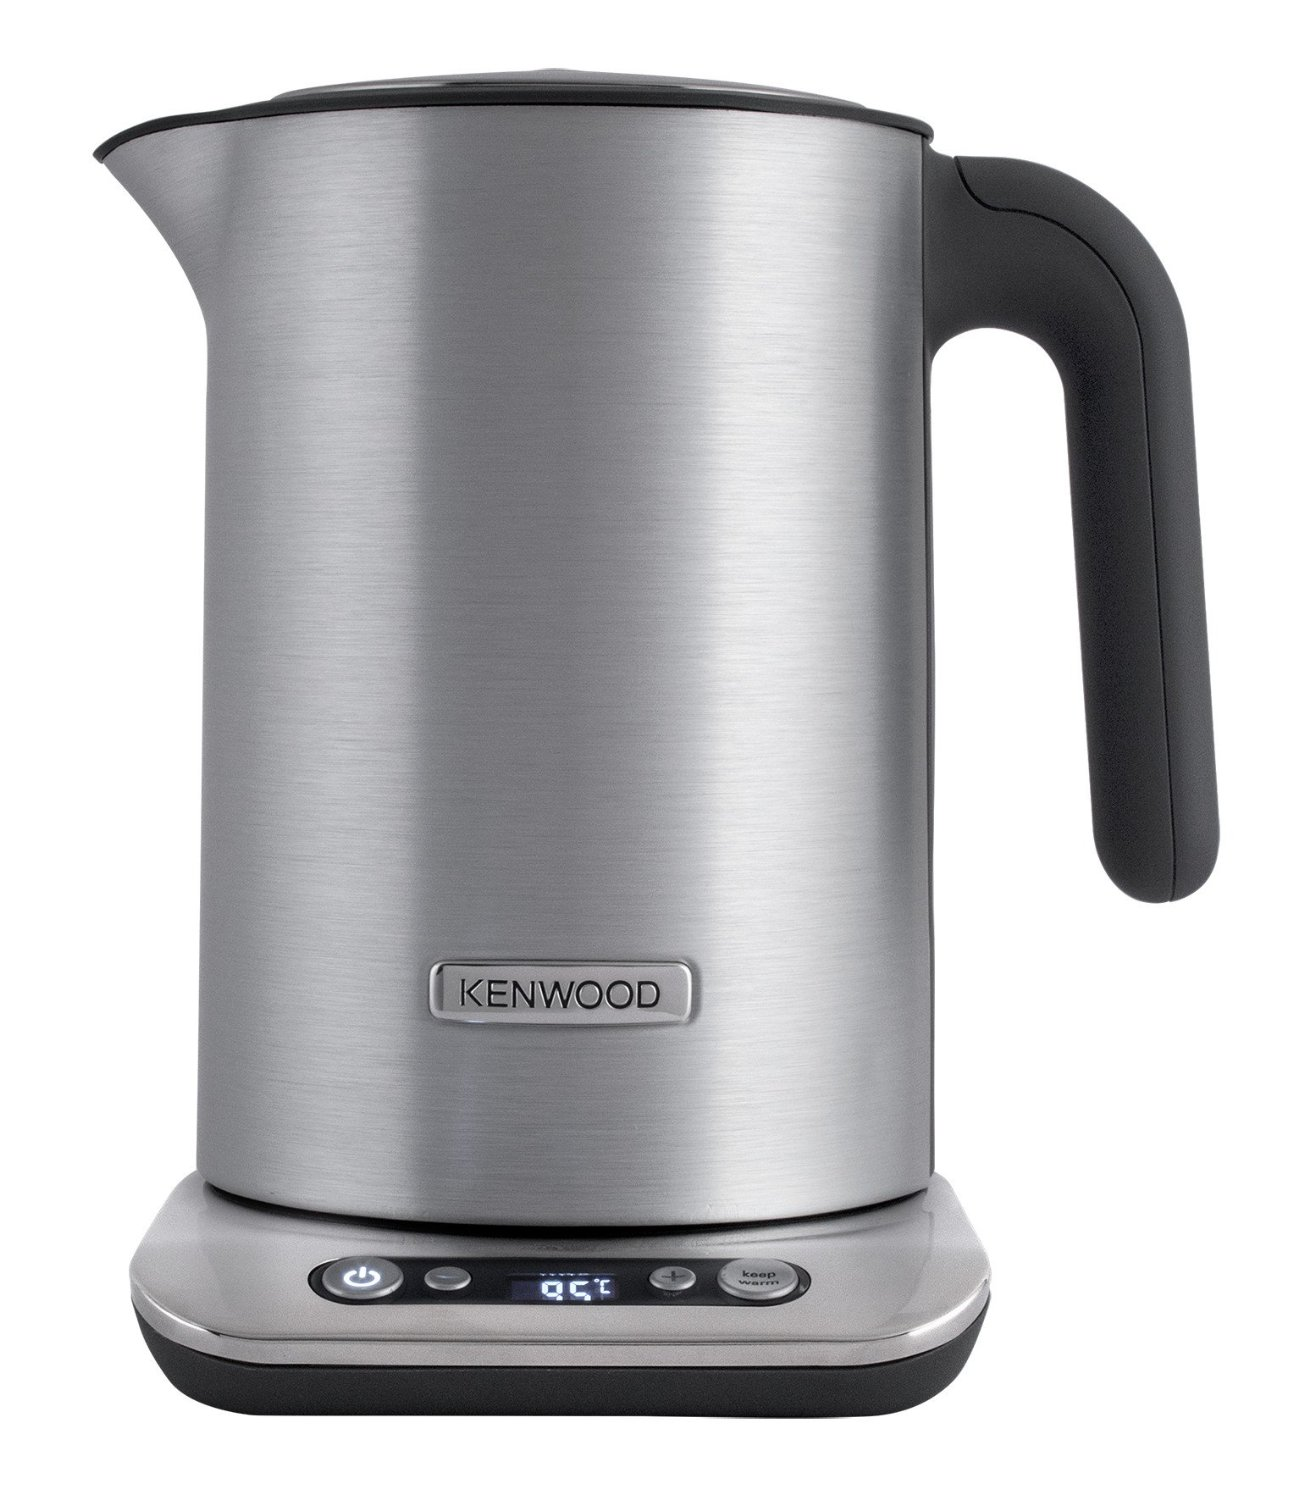 Kenwood SJM610 Variable Temperature Electric Kettle